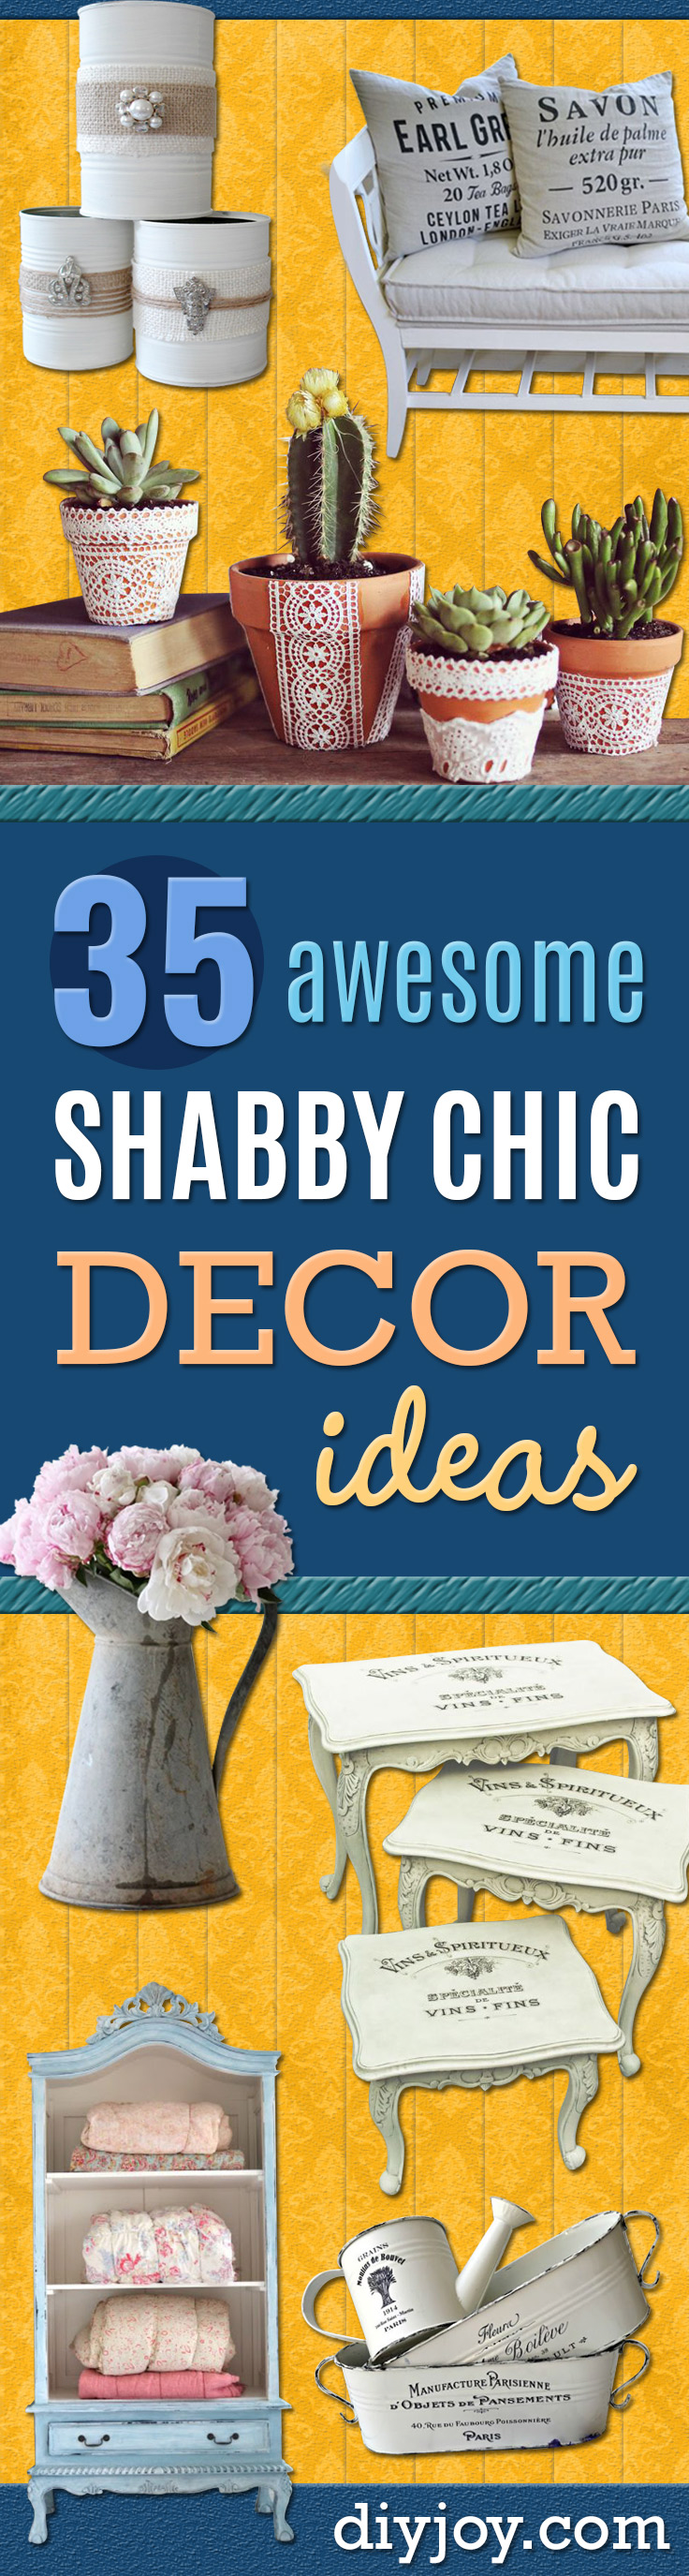 DIY Shabby Chic Decor Ideas - French Farmhouse and Vintage White Linens - Bedroom, Living Room, Bathroom Ideas, Distressed Furniture and Boho Crafts - Cheap Dollar Store Projects and Upcycle Repurposed Home Decor http://diyjoy.com/shabby-chic-diy